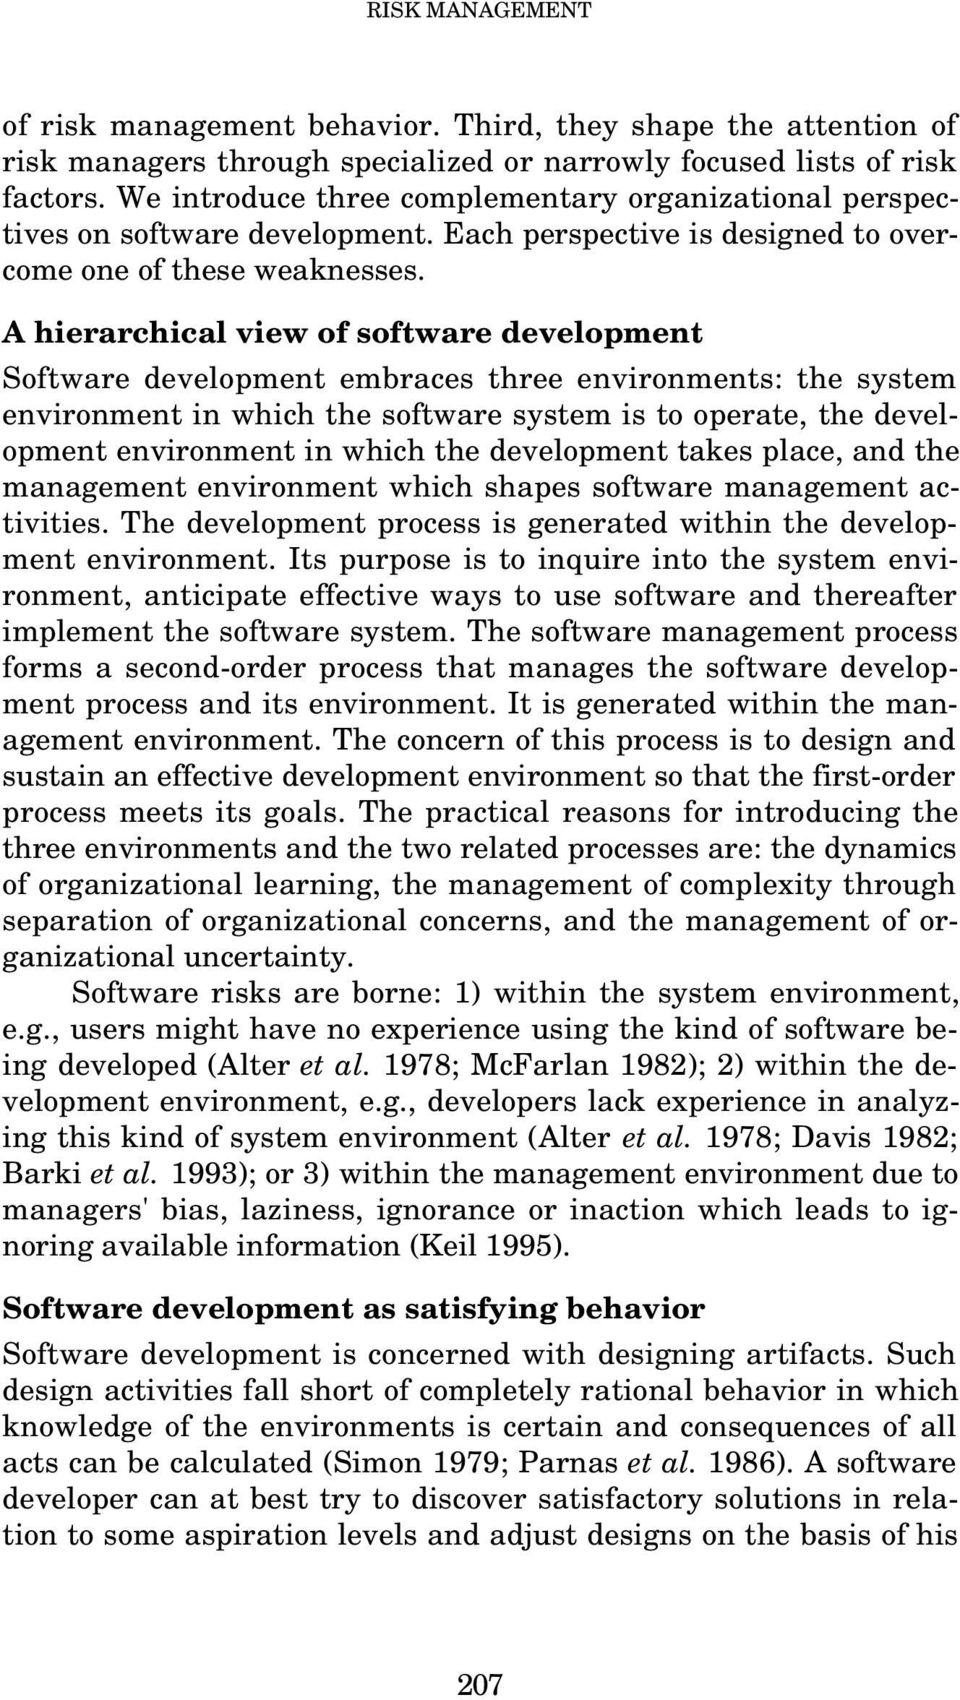 A hierarchical view of software development Software development embraces three environments: the system environment in which the software system is to operate, the development environment in which